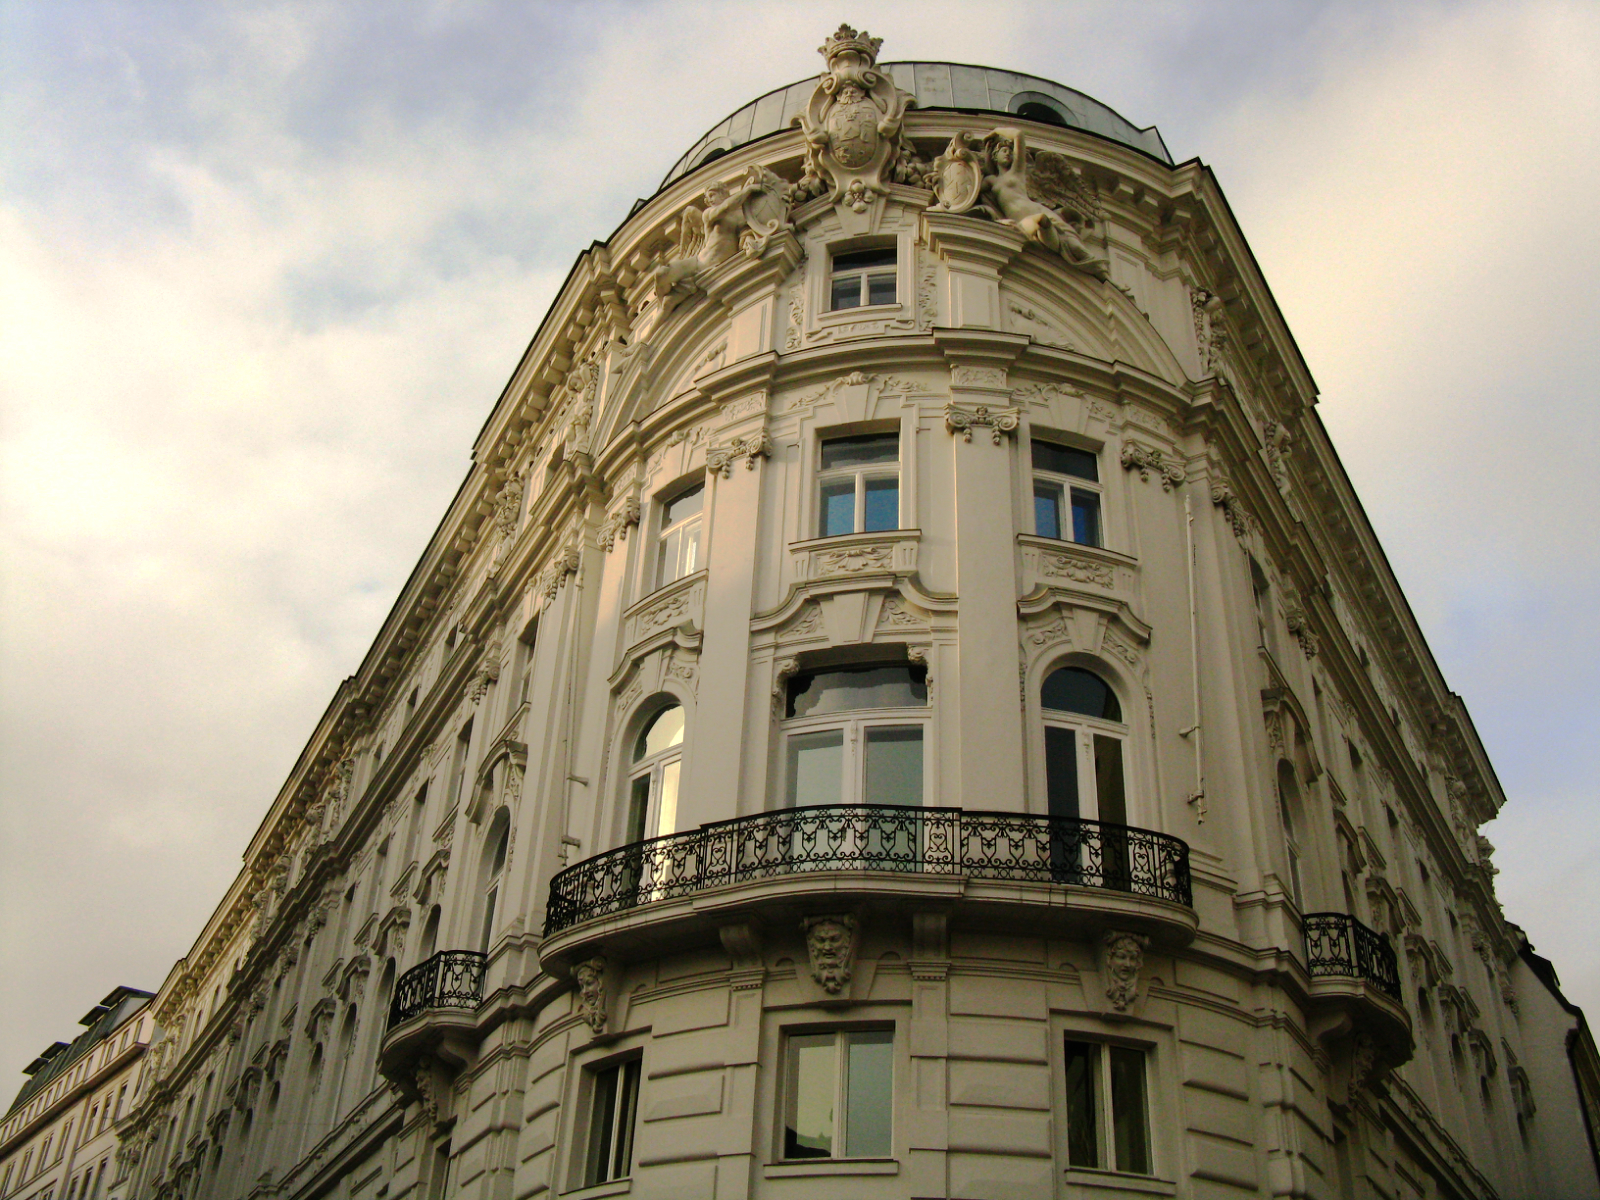 Vienna's grandiose buildings